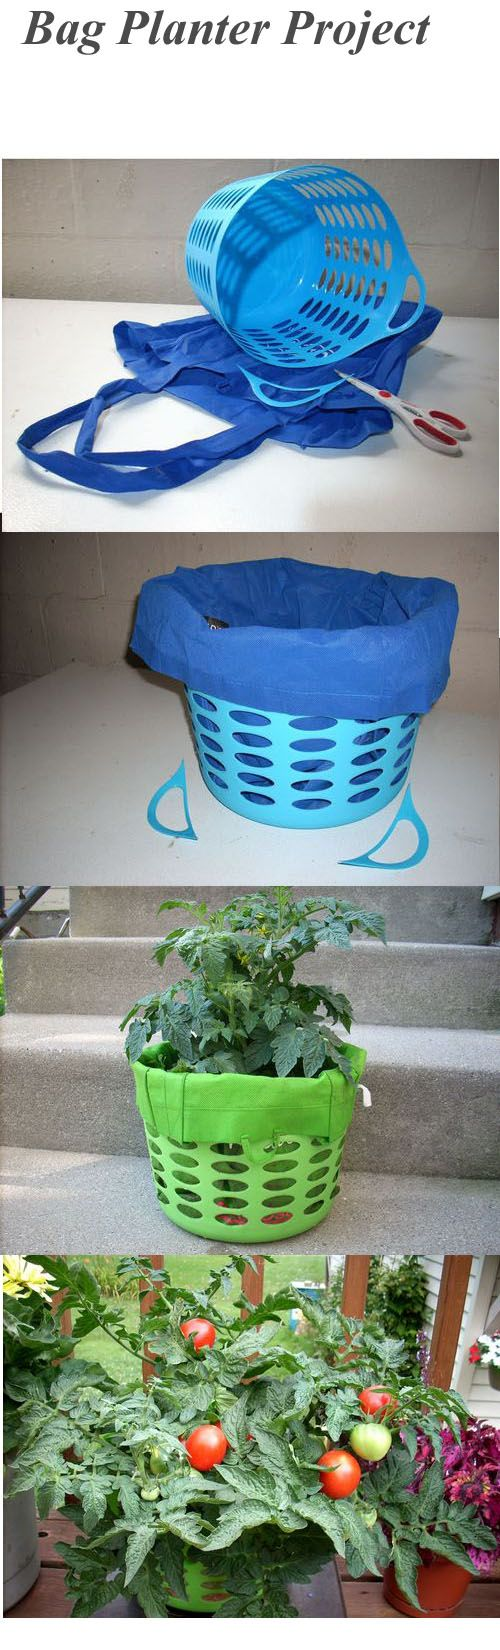 Patio Tomato plant in a clothe bag from the grocery store set inside a accessory basket fro the dollar store. Idea from growing potatoes in a sack to let the roots breath. Mature plants need water every 2 days. You can see the great results.  jp